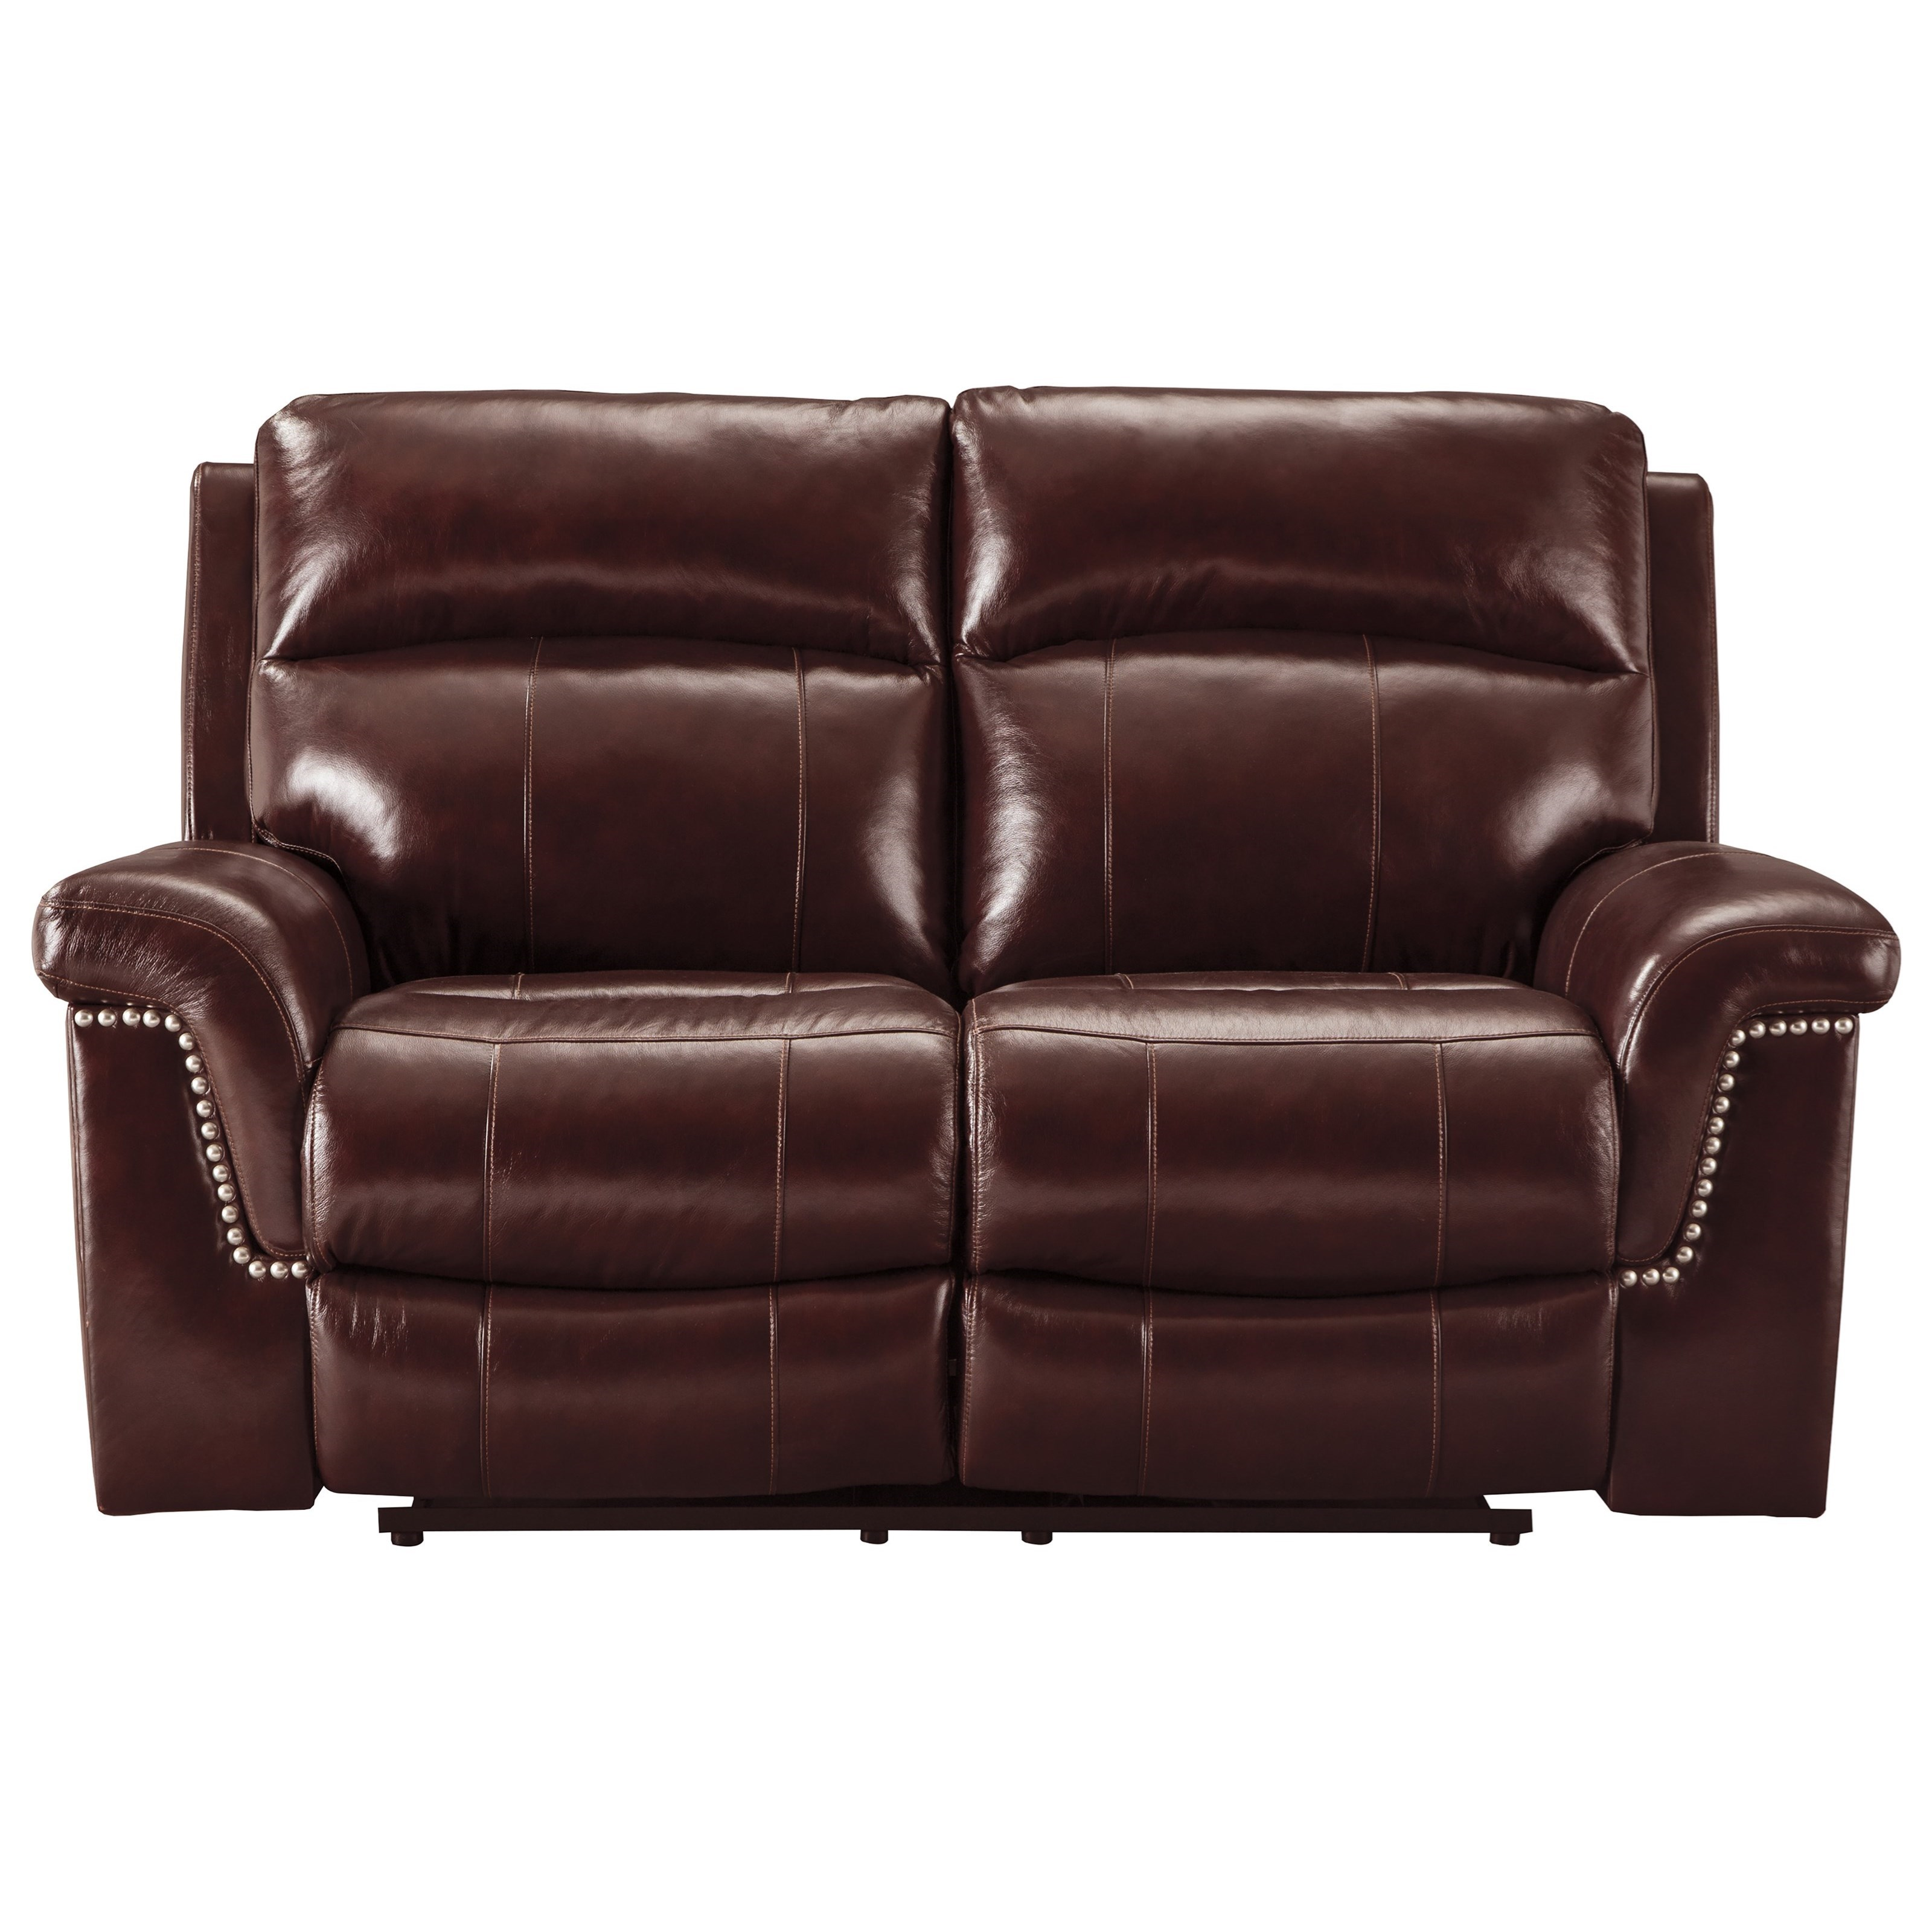 Signature Design by Ashley Timmons Power Reclining Loveseat - Item Number: 7450114